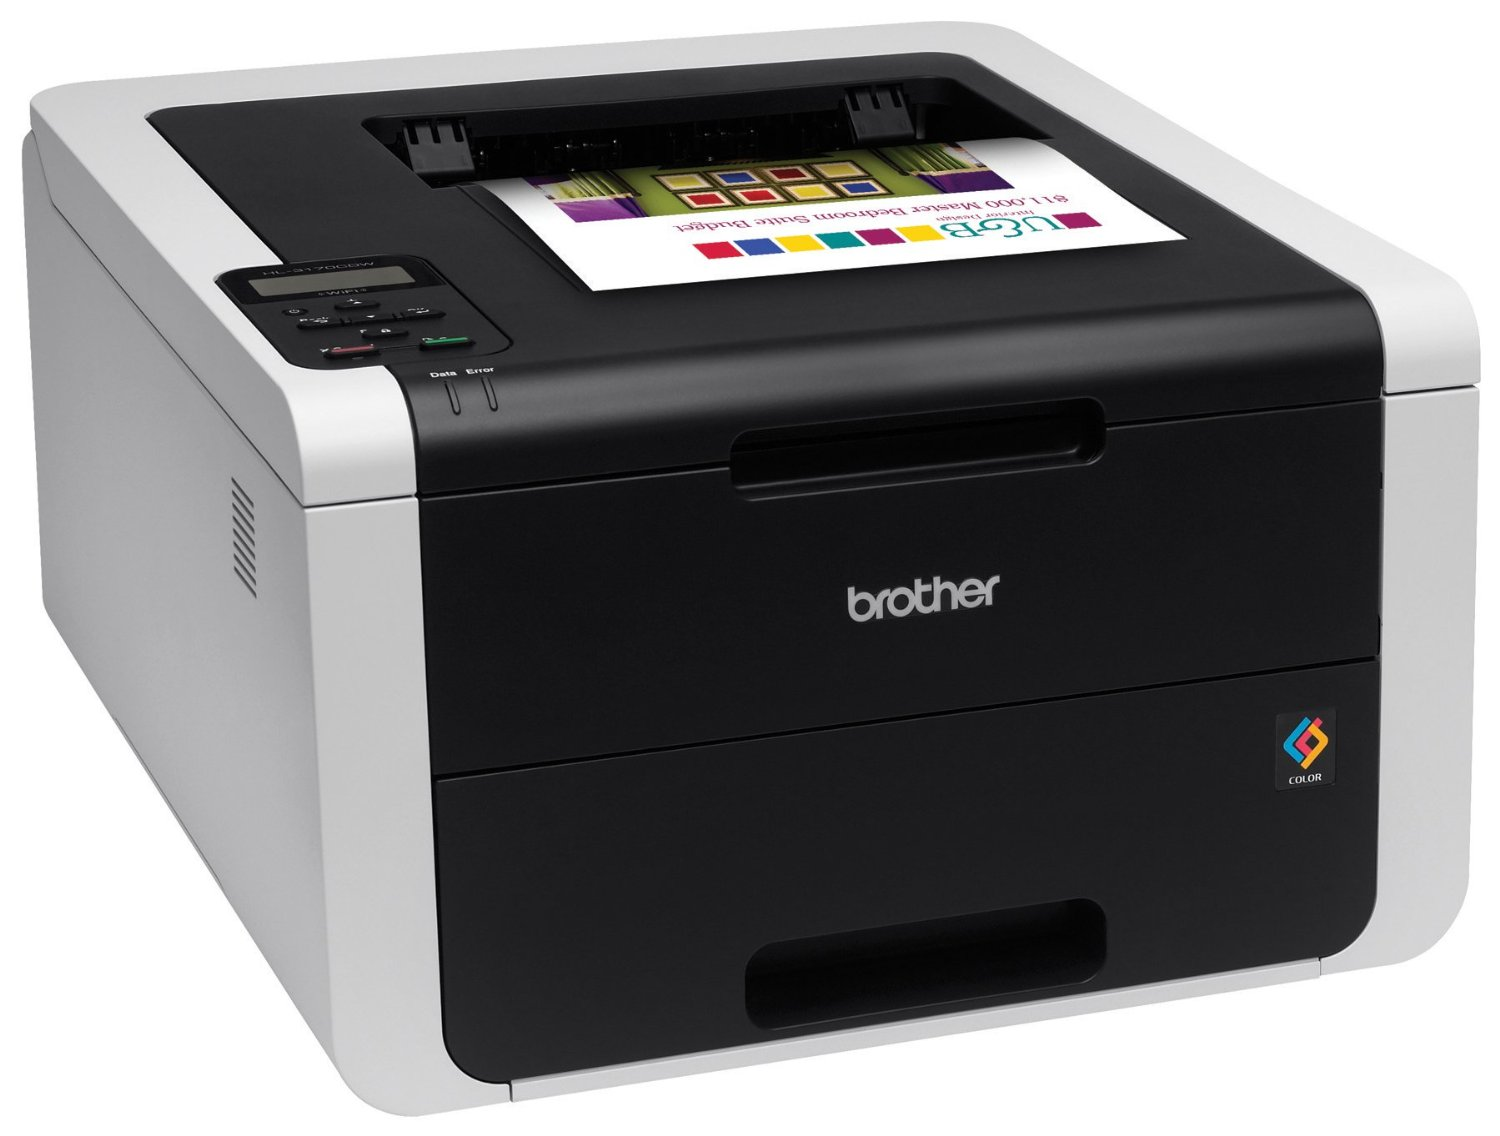 BROTHER tiskárna color LED HL-3170CDW - A4, 22ppm, 2400x600, duplex, 128MB, USB 2.0, LAN, WiFi